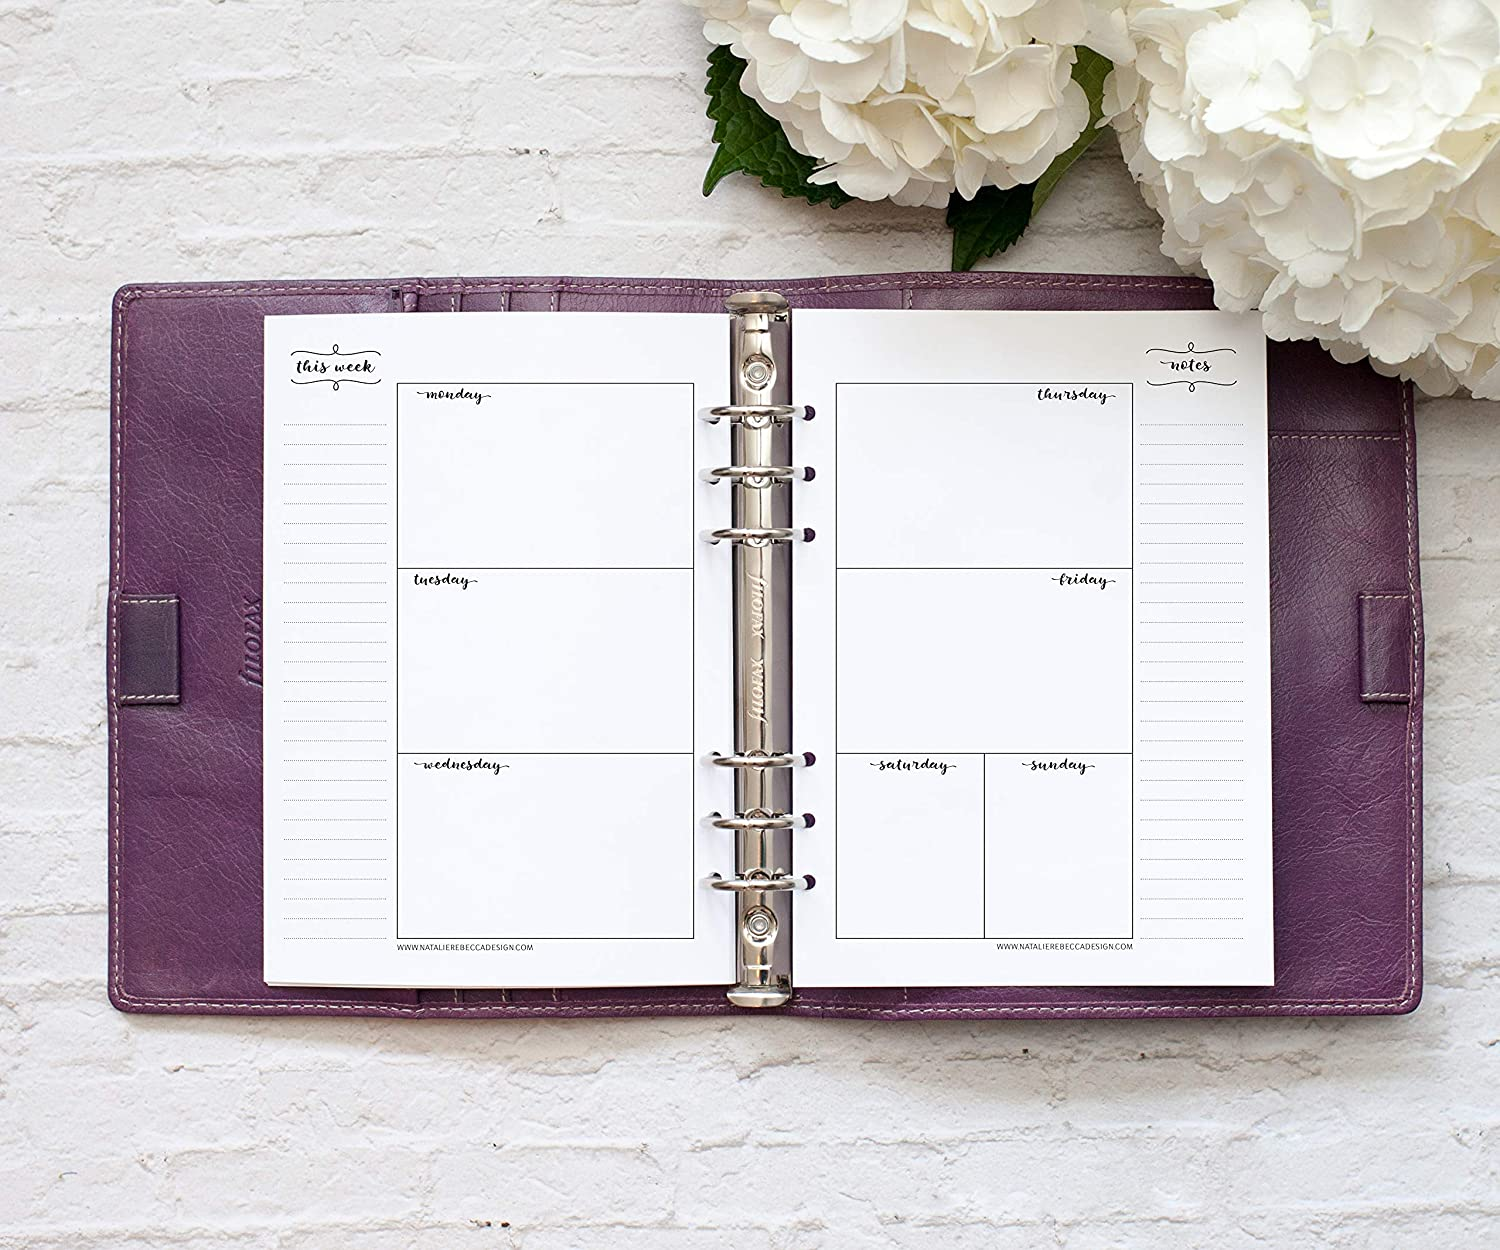 A5 Horizontal Undated Calendar 6 Month Supply Notebook Not Included 5.8x8.3